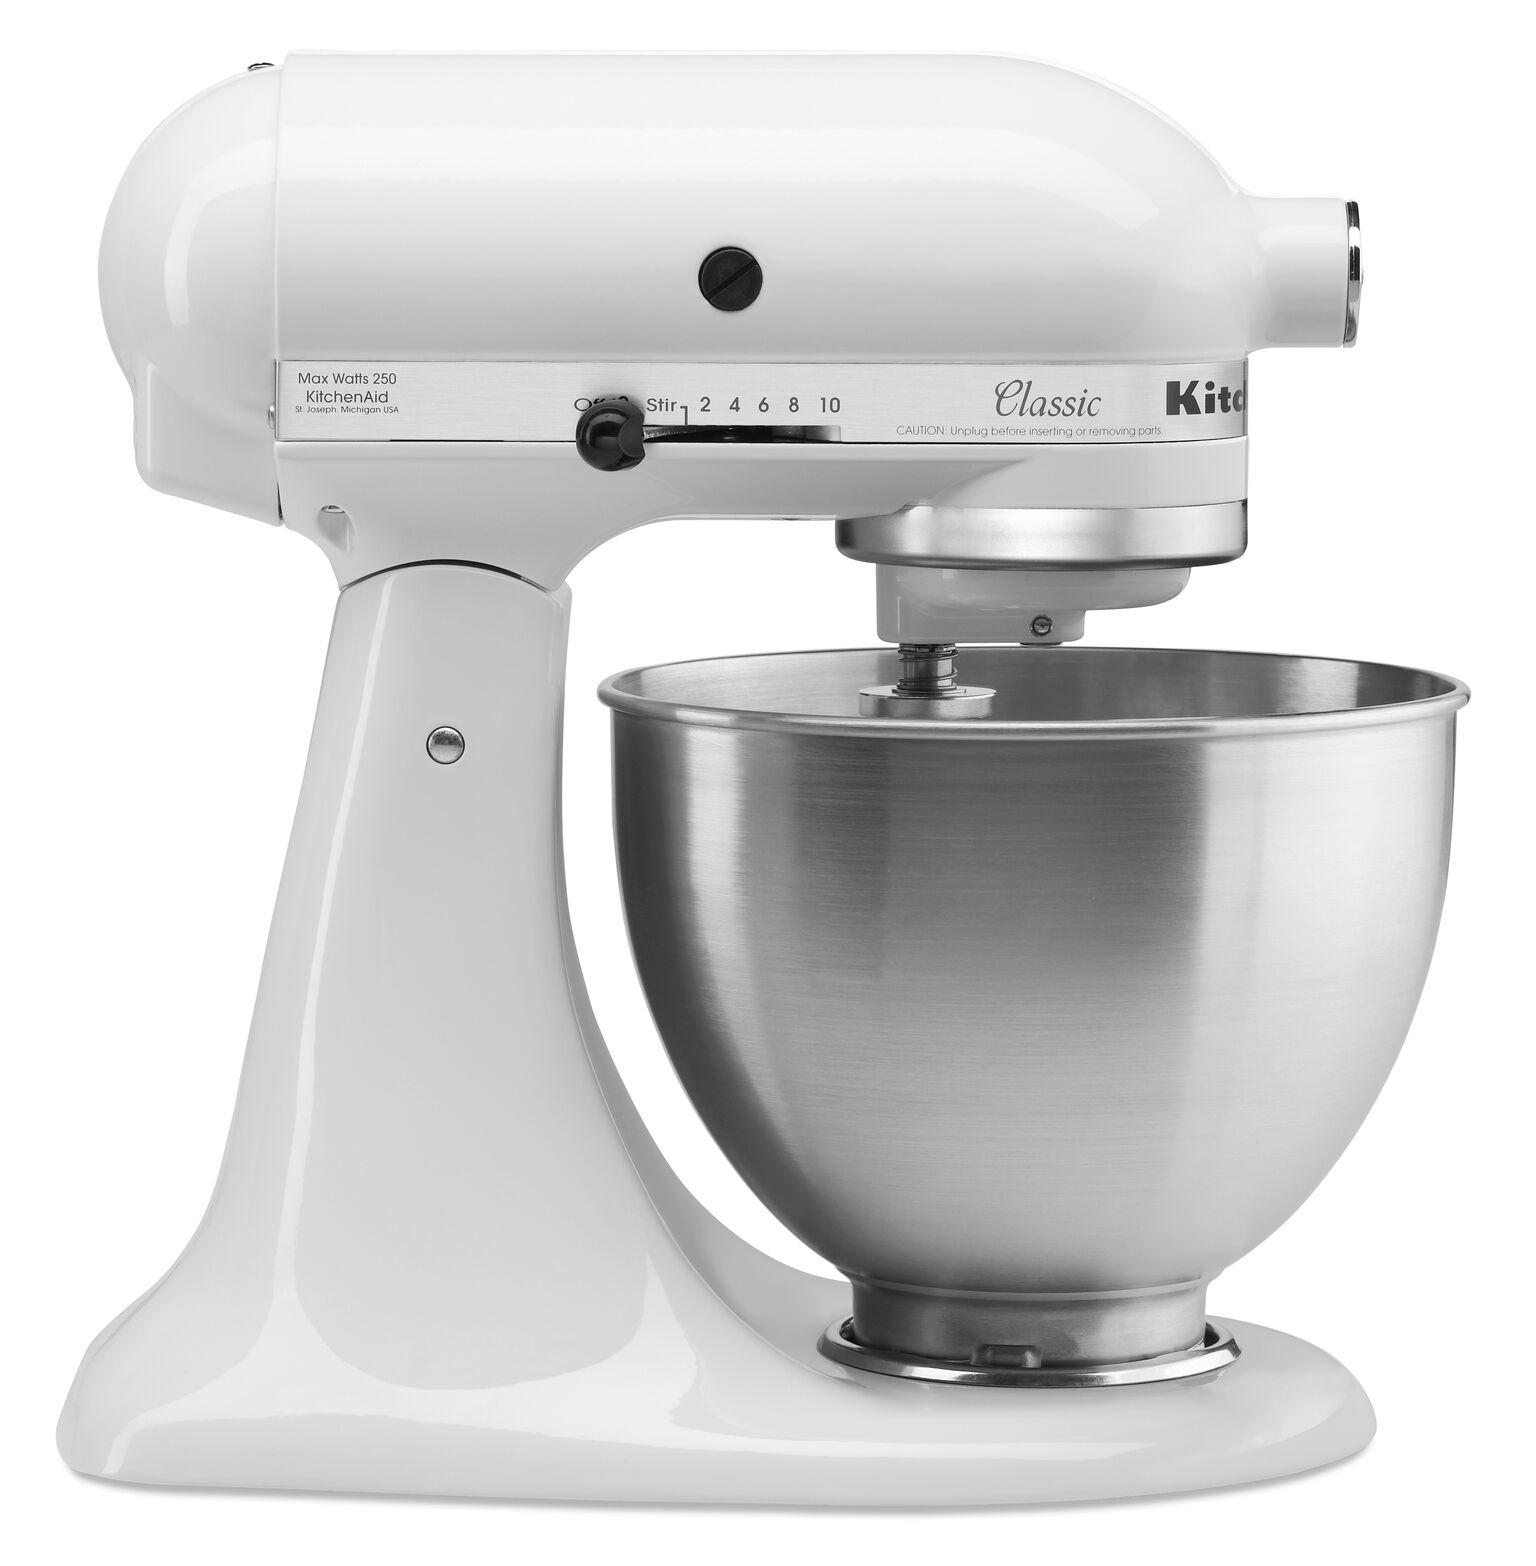 Incroyable KitchenAid Classic Series 4.5 Quart Tilt Head Stand Mixer, White (K45SSWH)